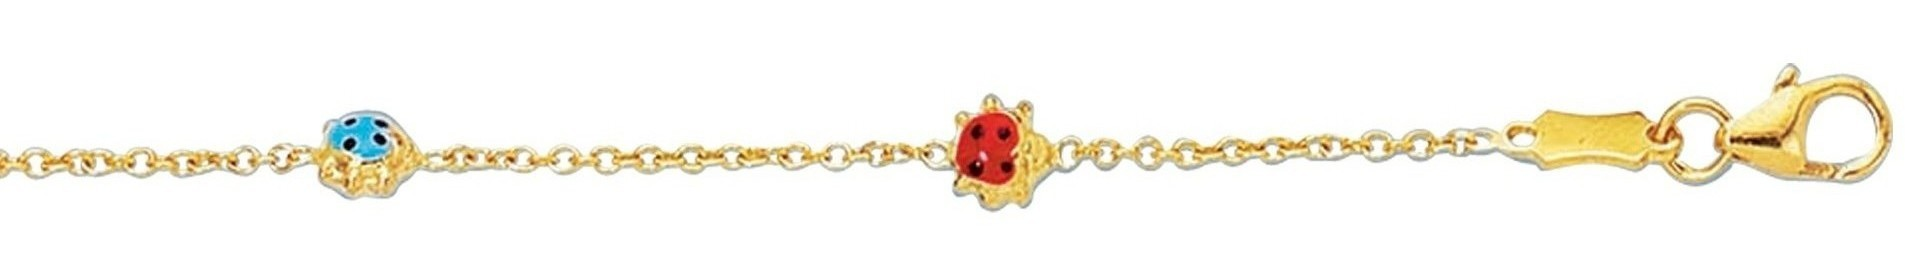 "5""-5.5"" 14K Yellow Gold 1.8mm (0.07"") Adjustable Cable Link Chain w/ Lady Bug Children Bracelet w/ Pear Shape Clasp"